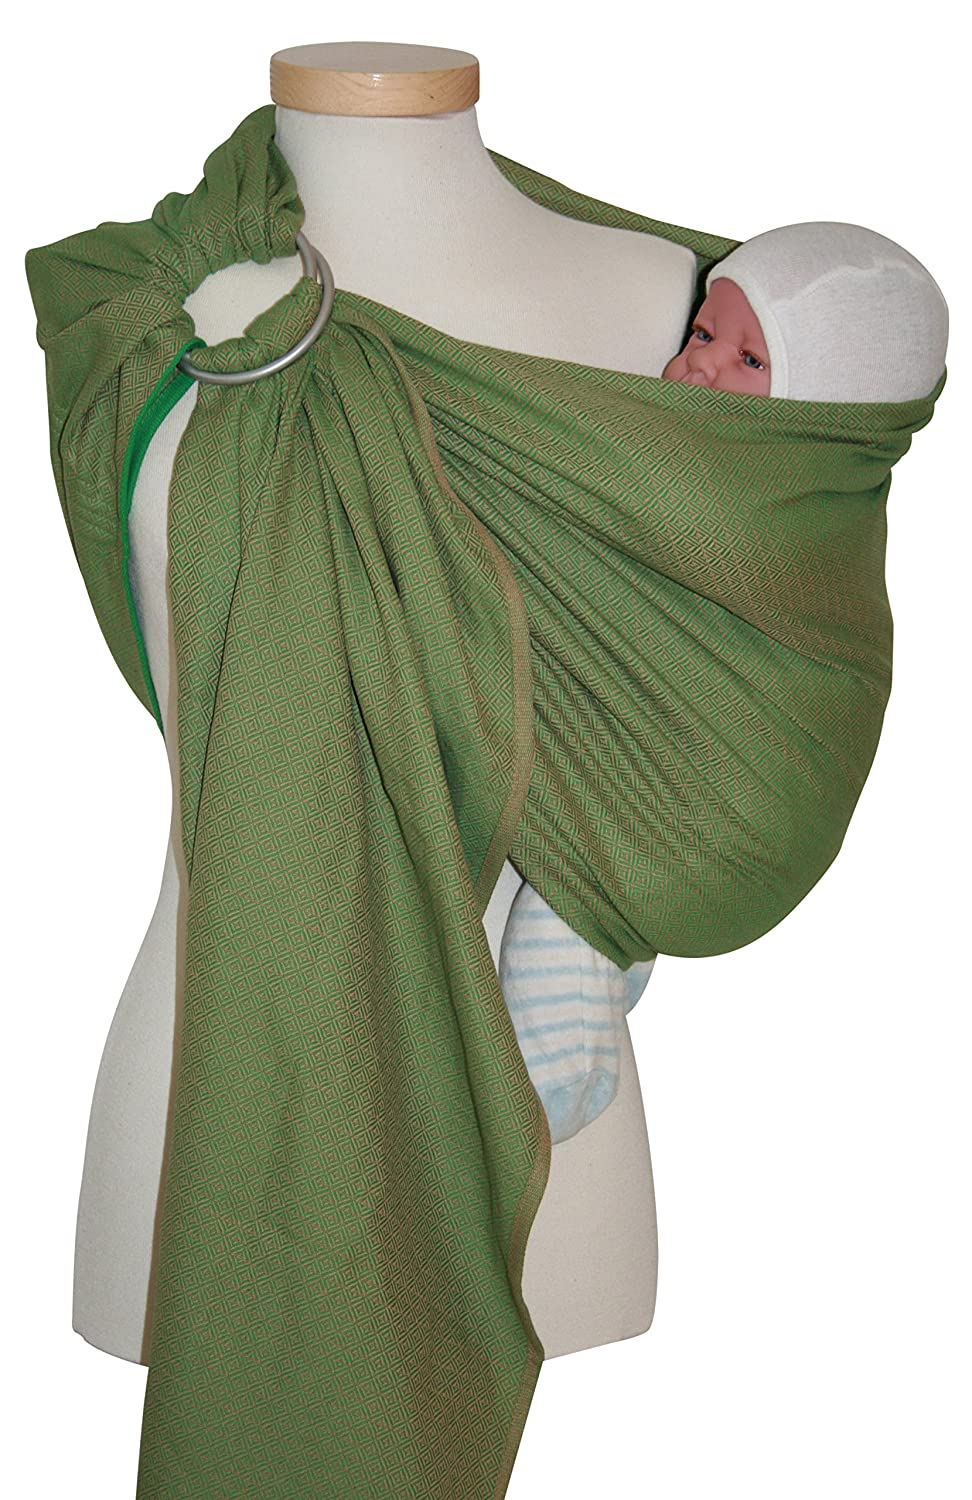 Storchenwiege Ring Sling Woven Cotton Baby Carrier From Germany Leo Pattern Leo Green